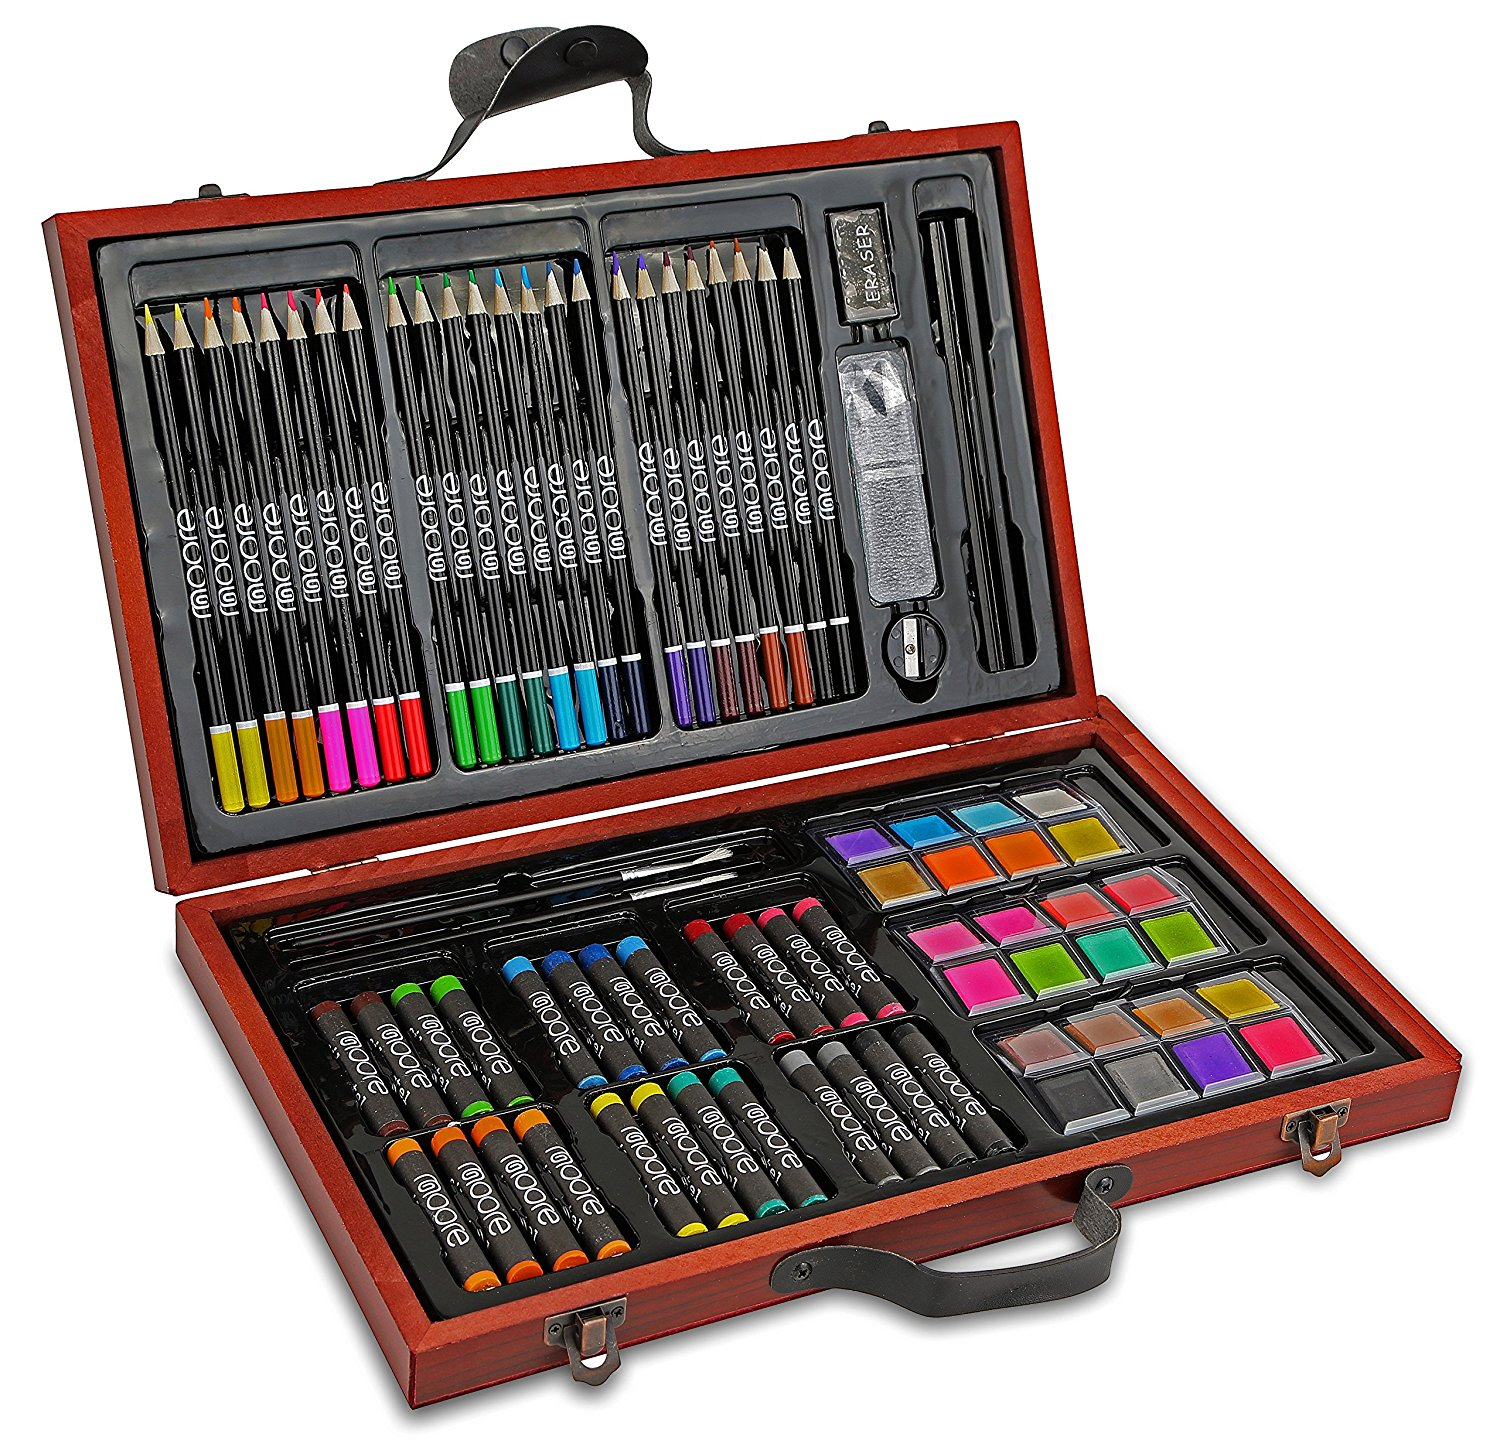 Moore 83 piece Deluxe Art Set, Portable Artist Studio in Wooden Case.